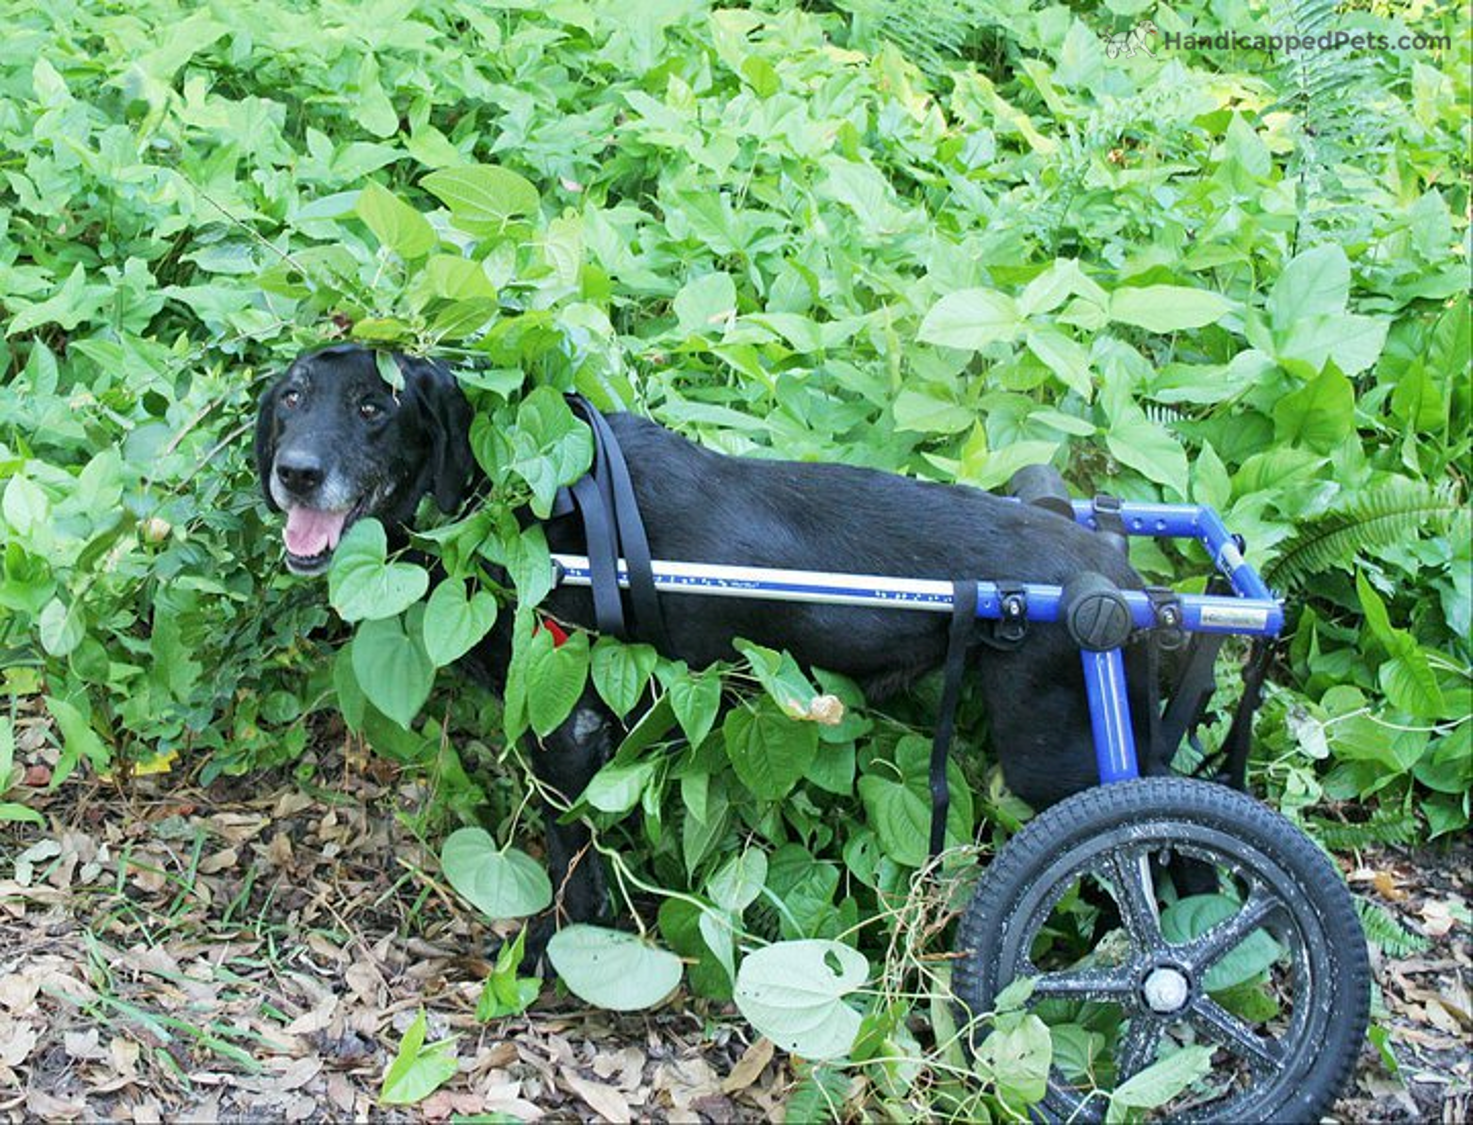 Throwbackthursday To 2010 To The Time Where Cliffie Hid In This Bush In His Walkin Wheels And Thought No One Could See Him Dog Wheelchair Pets Four Legged